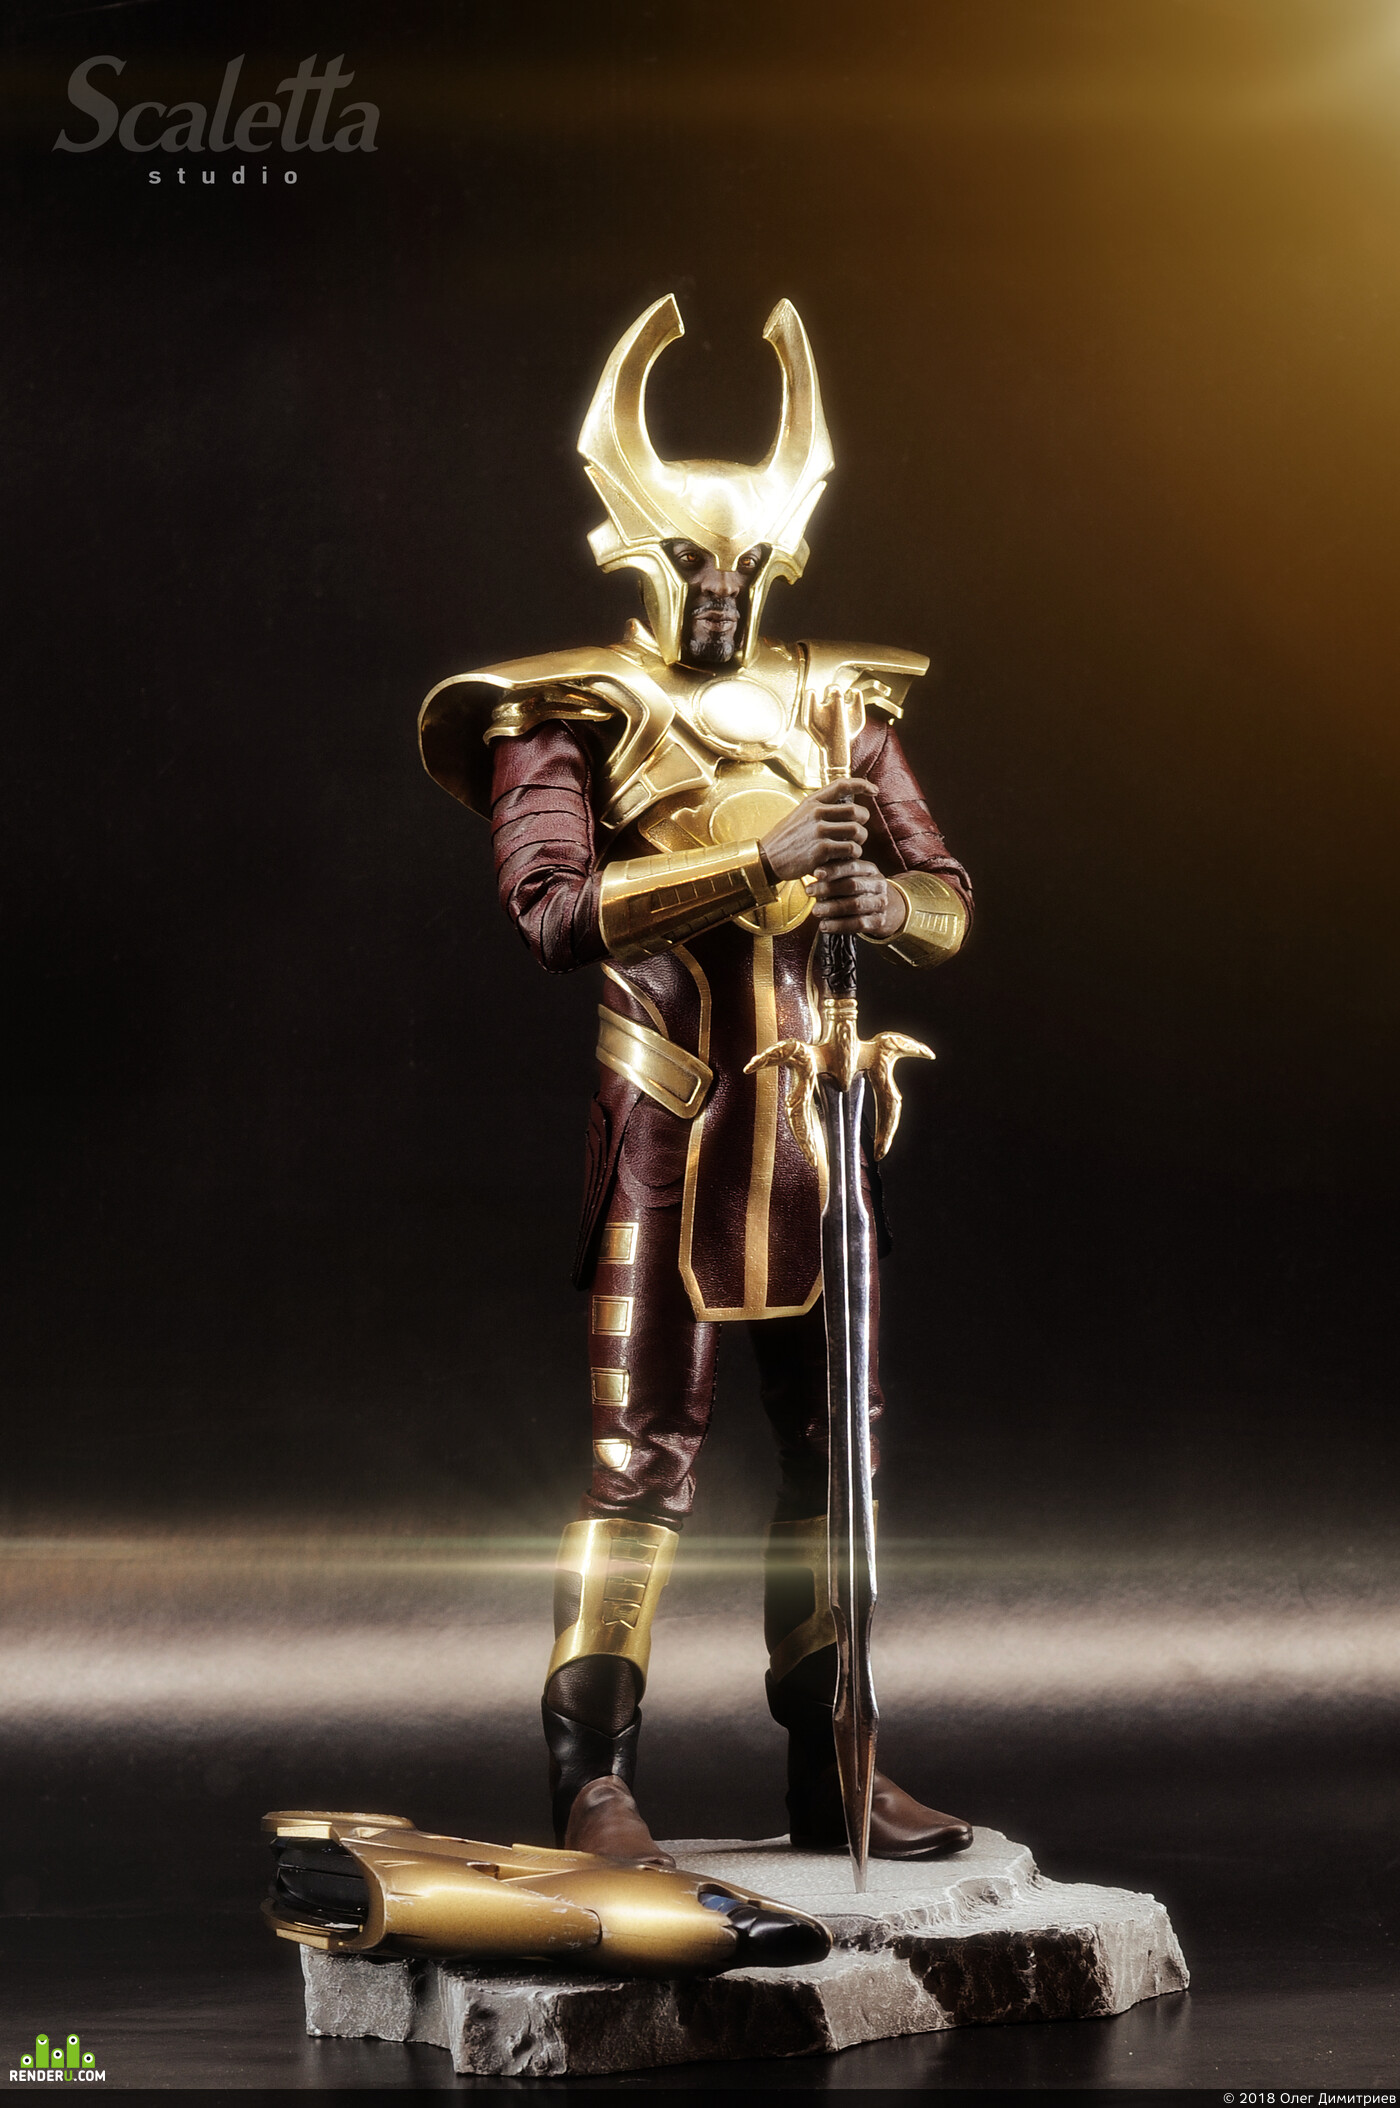 1/6scale, heimdall, ZBrush, Lightwave 3D